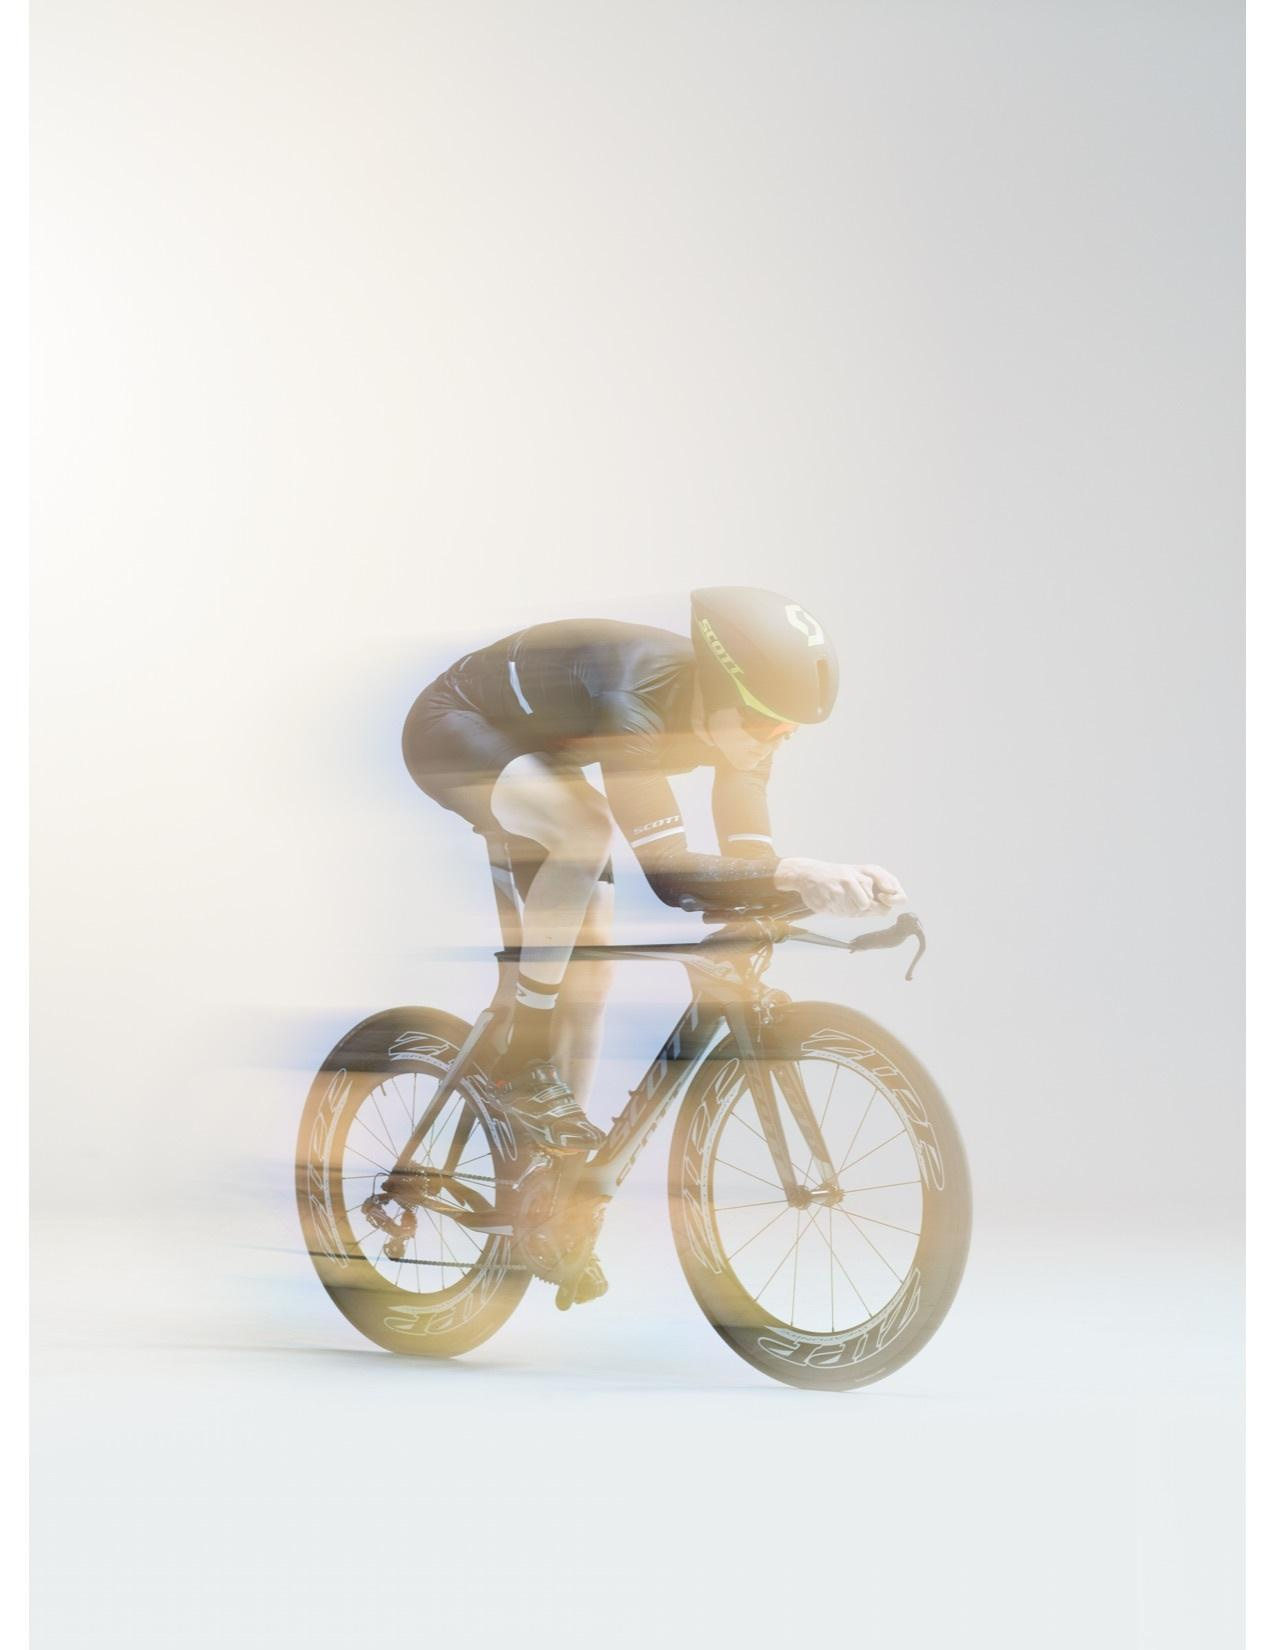 Scott Sports: Huge Redesigned the Cycling Helmet and It is Already Winning in the Tour de France